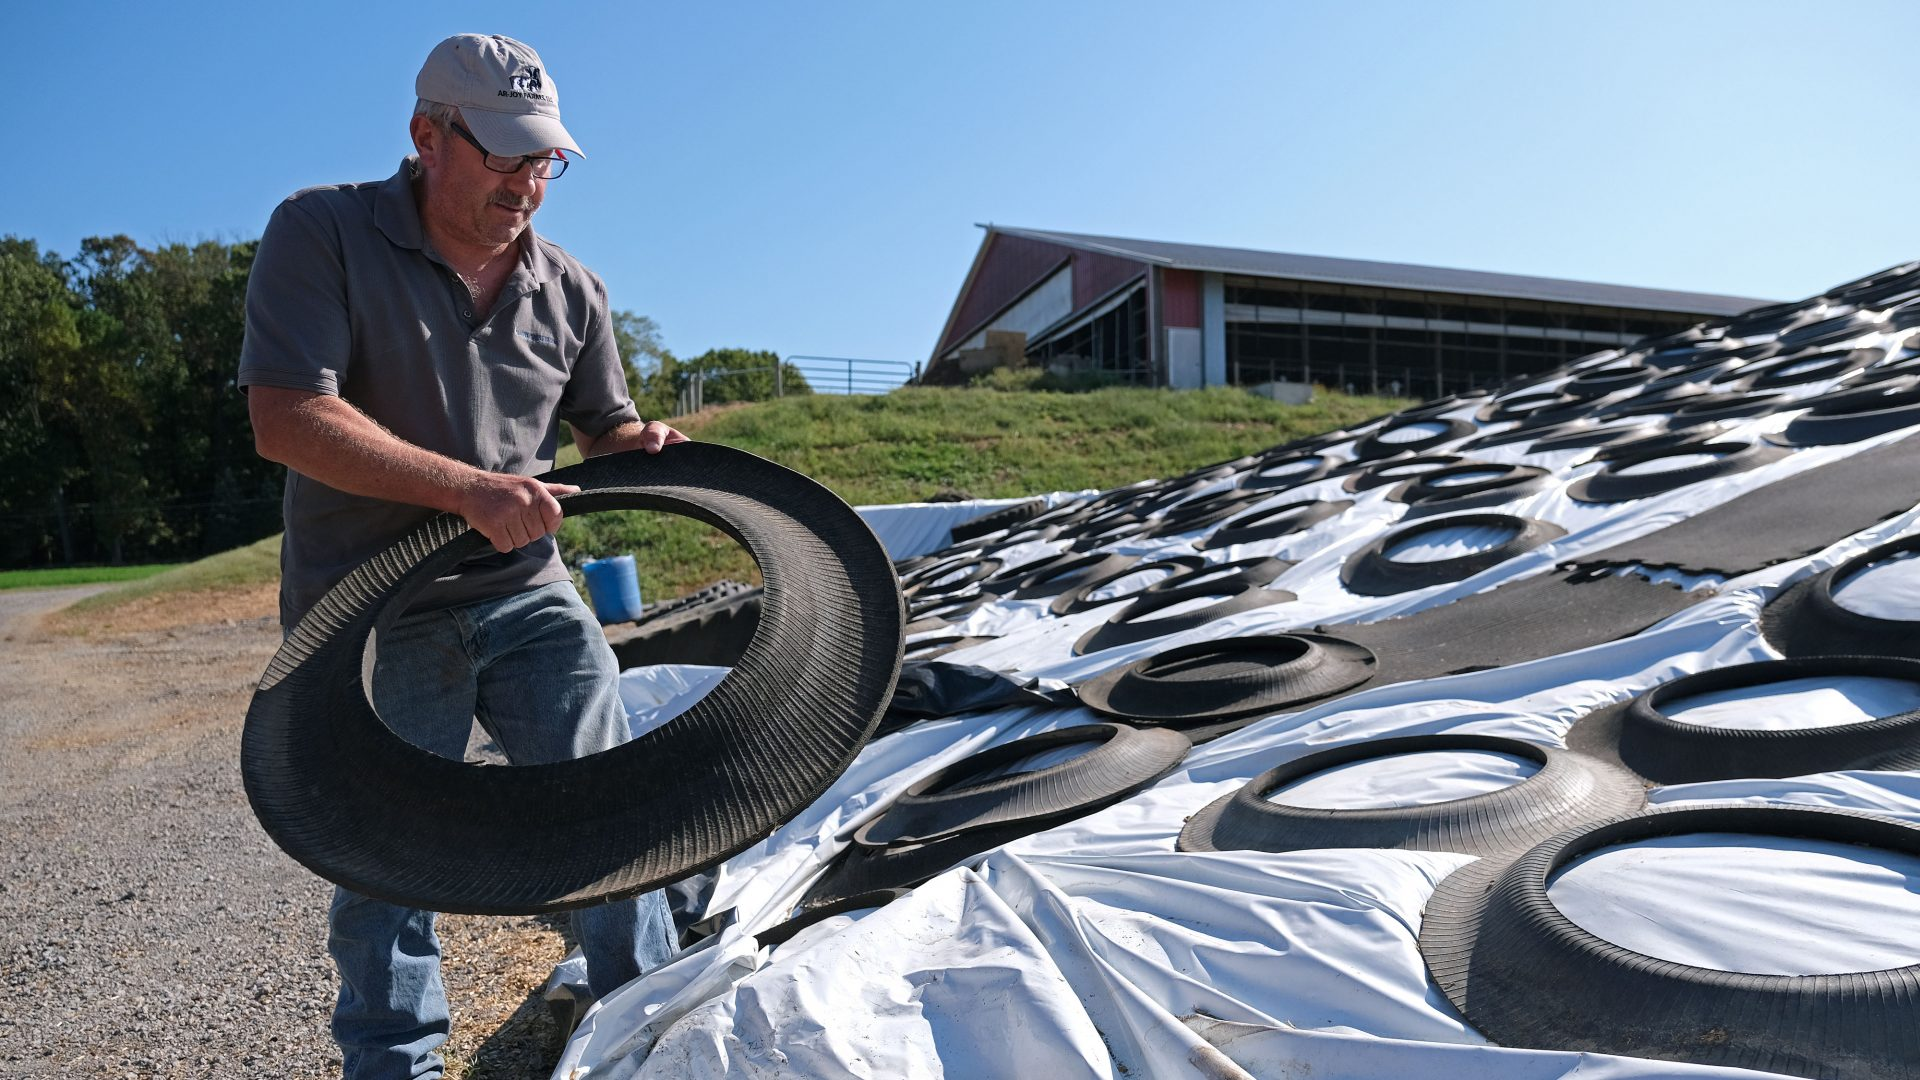 Dairy farmer Duane Hershey covers a pile of bedding for cows converted from cow waste and filtered and converted in an effort to reuse materials Sept. 25, 2019, at Ar-Joy Farms in West Fallowfield Township, Pennsylvania.